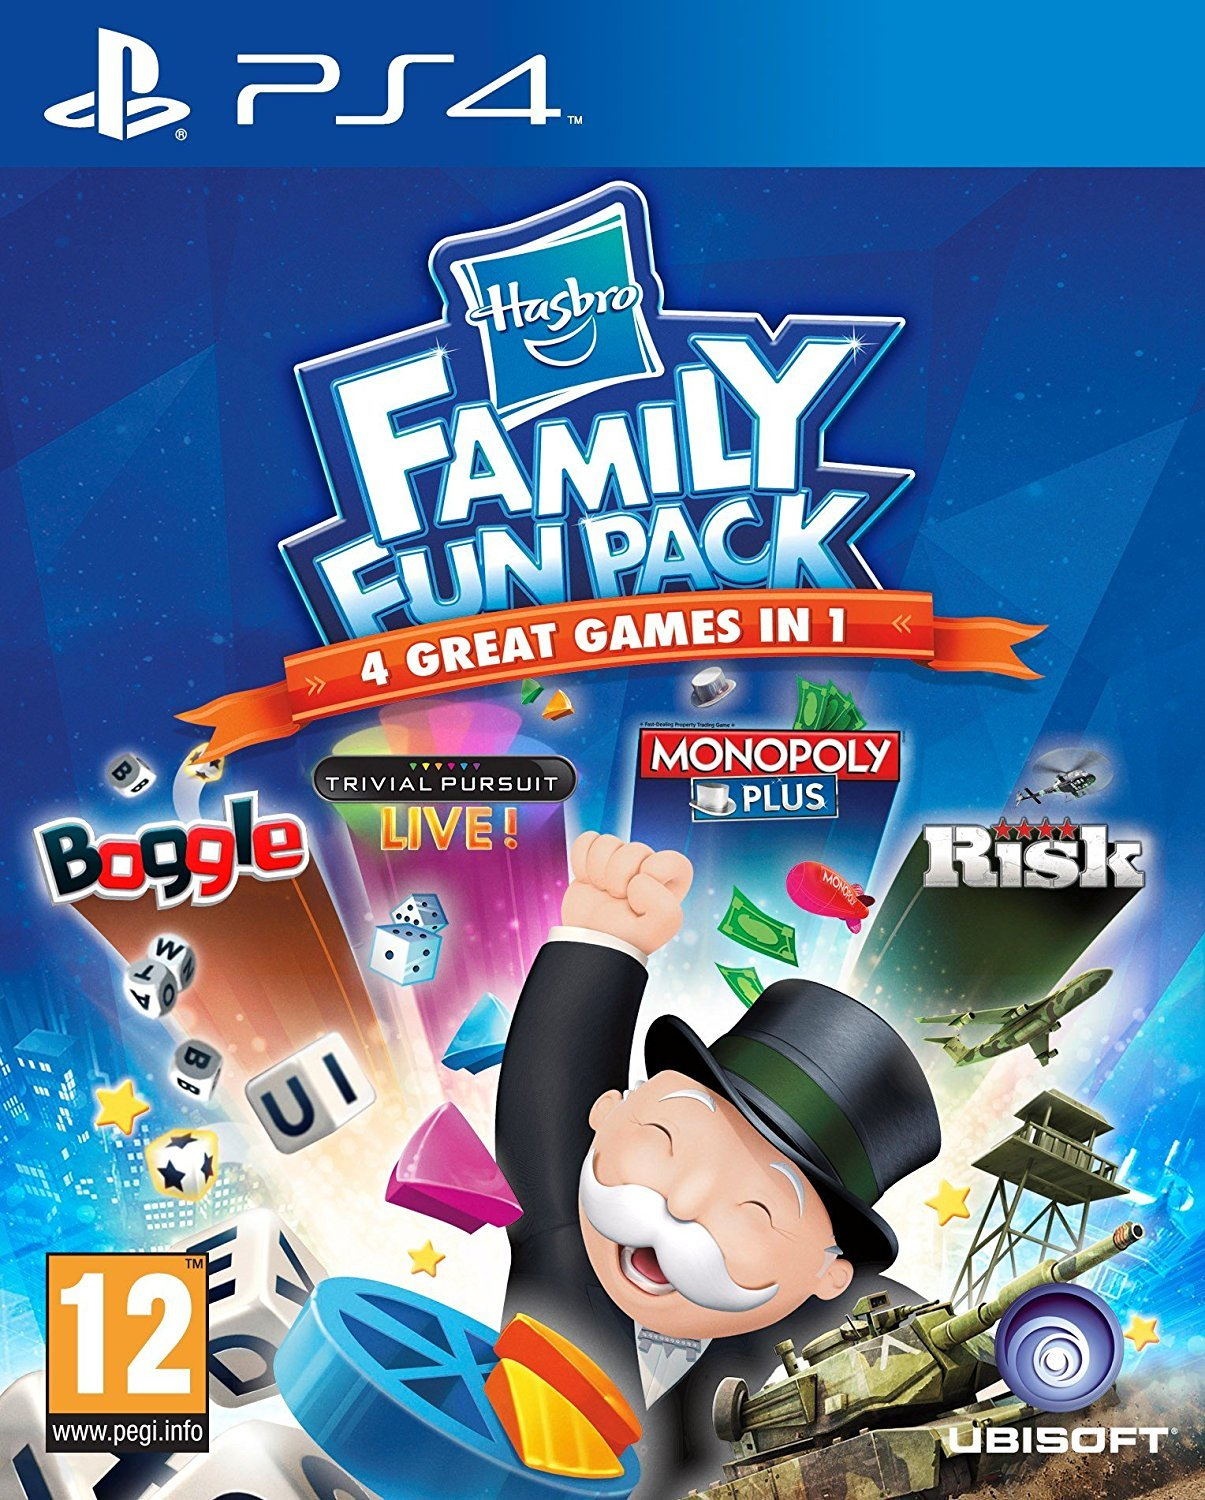 Hasbro Family Fun Pack Compilation for PS4 image